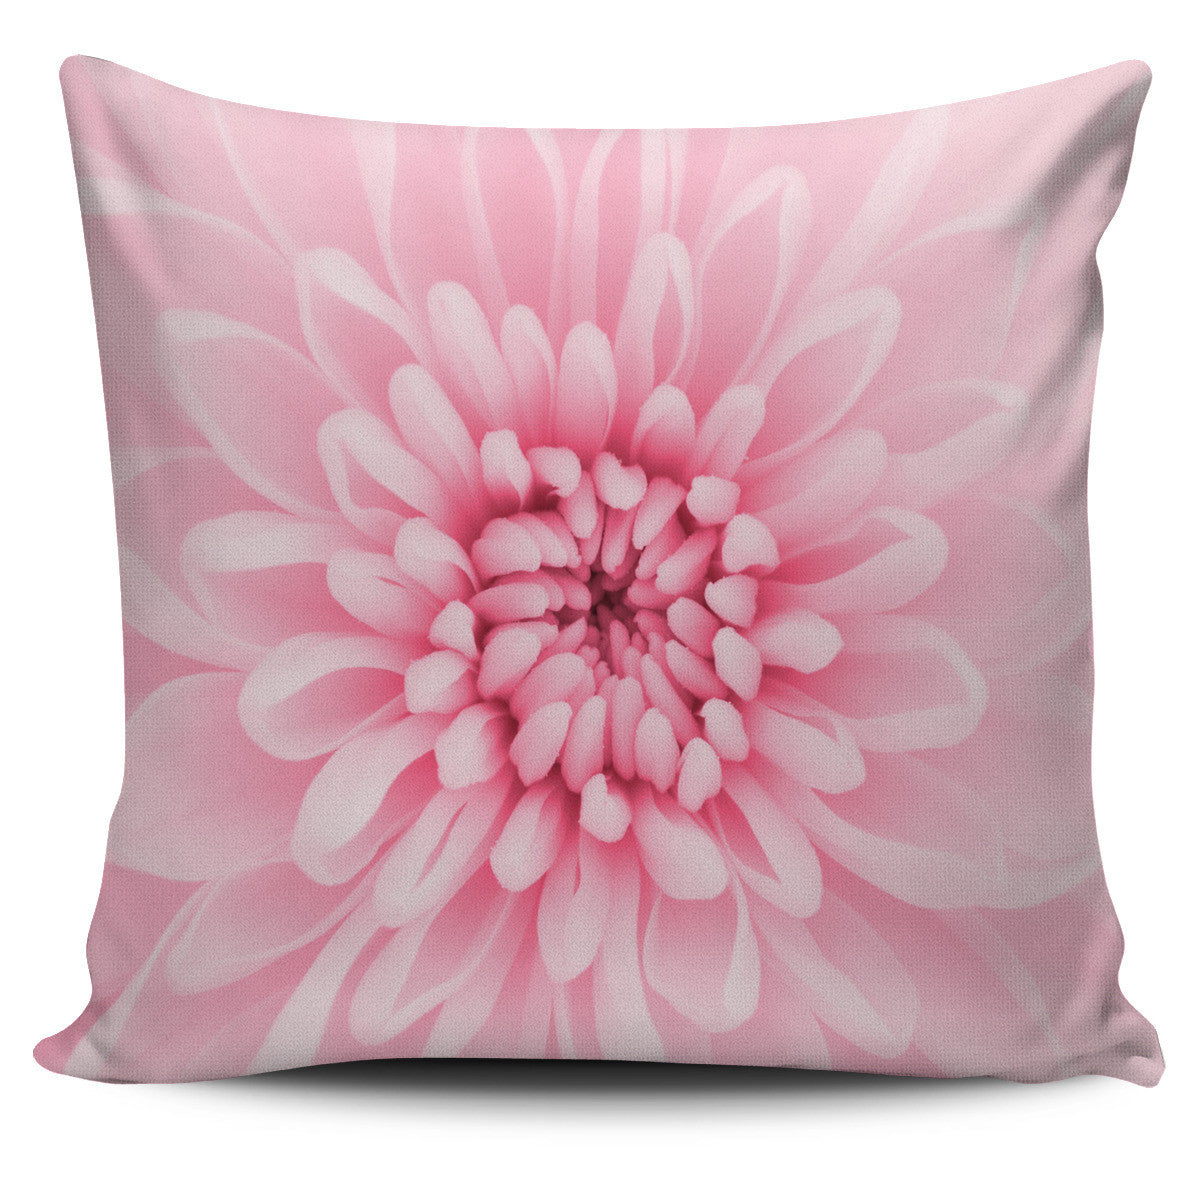 Chrysanthemum Flower Pillow Cover The Ginger Daisy Co